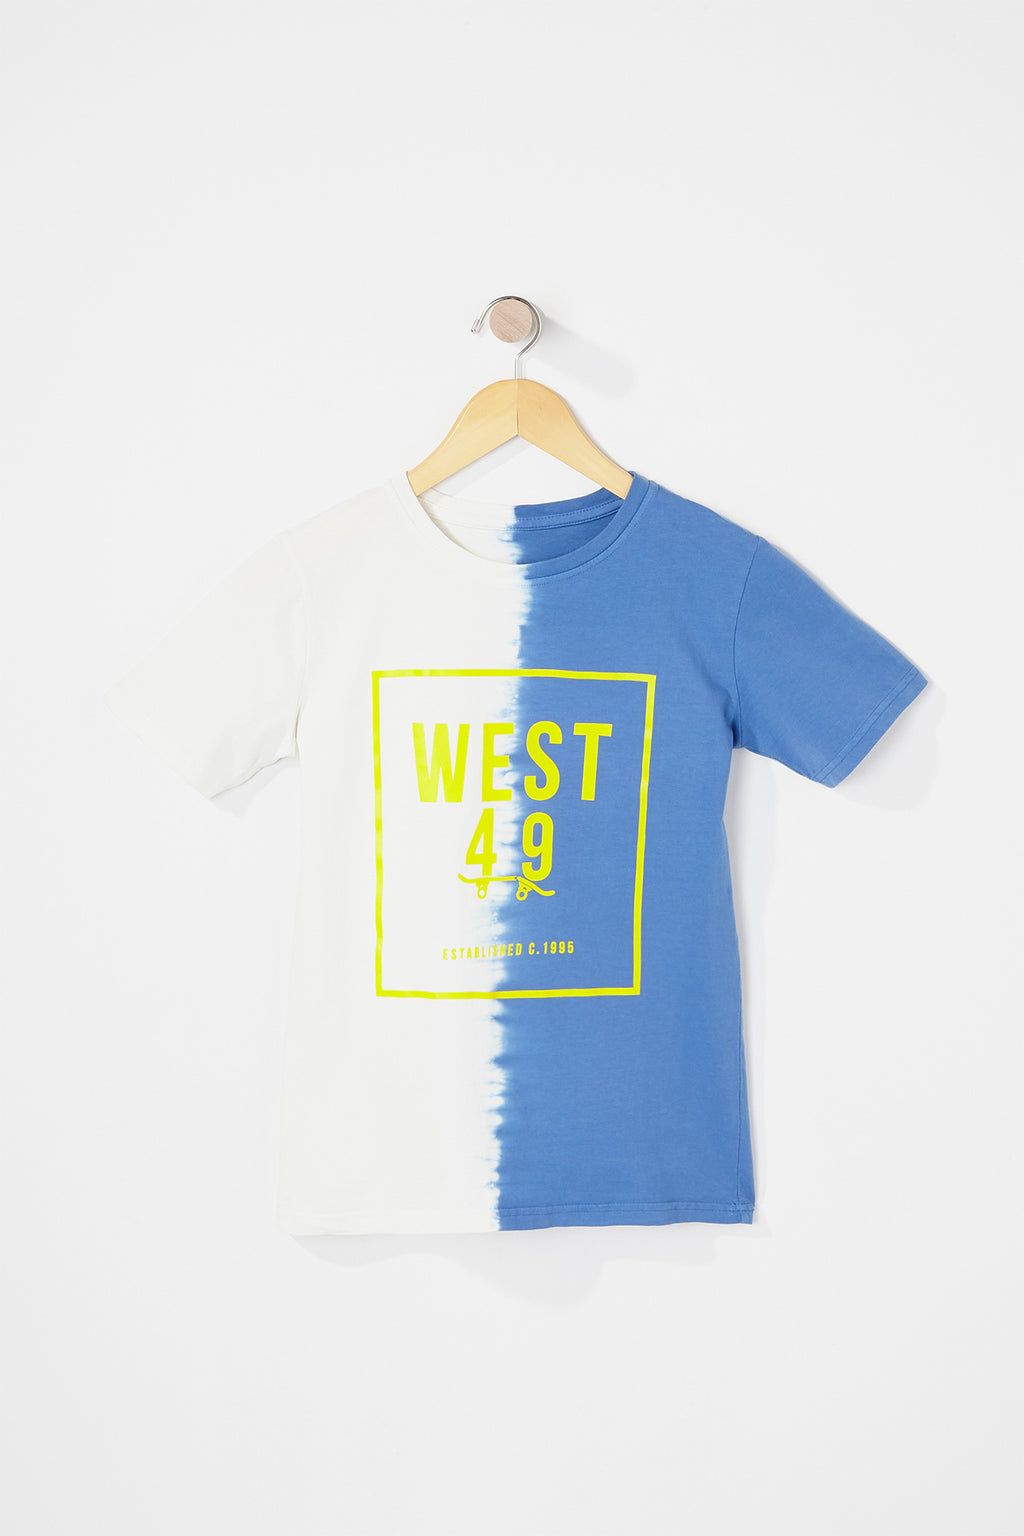 West49 Boys Box Logo Tie Dye T-Shirt